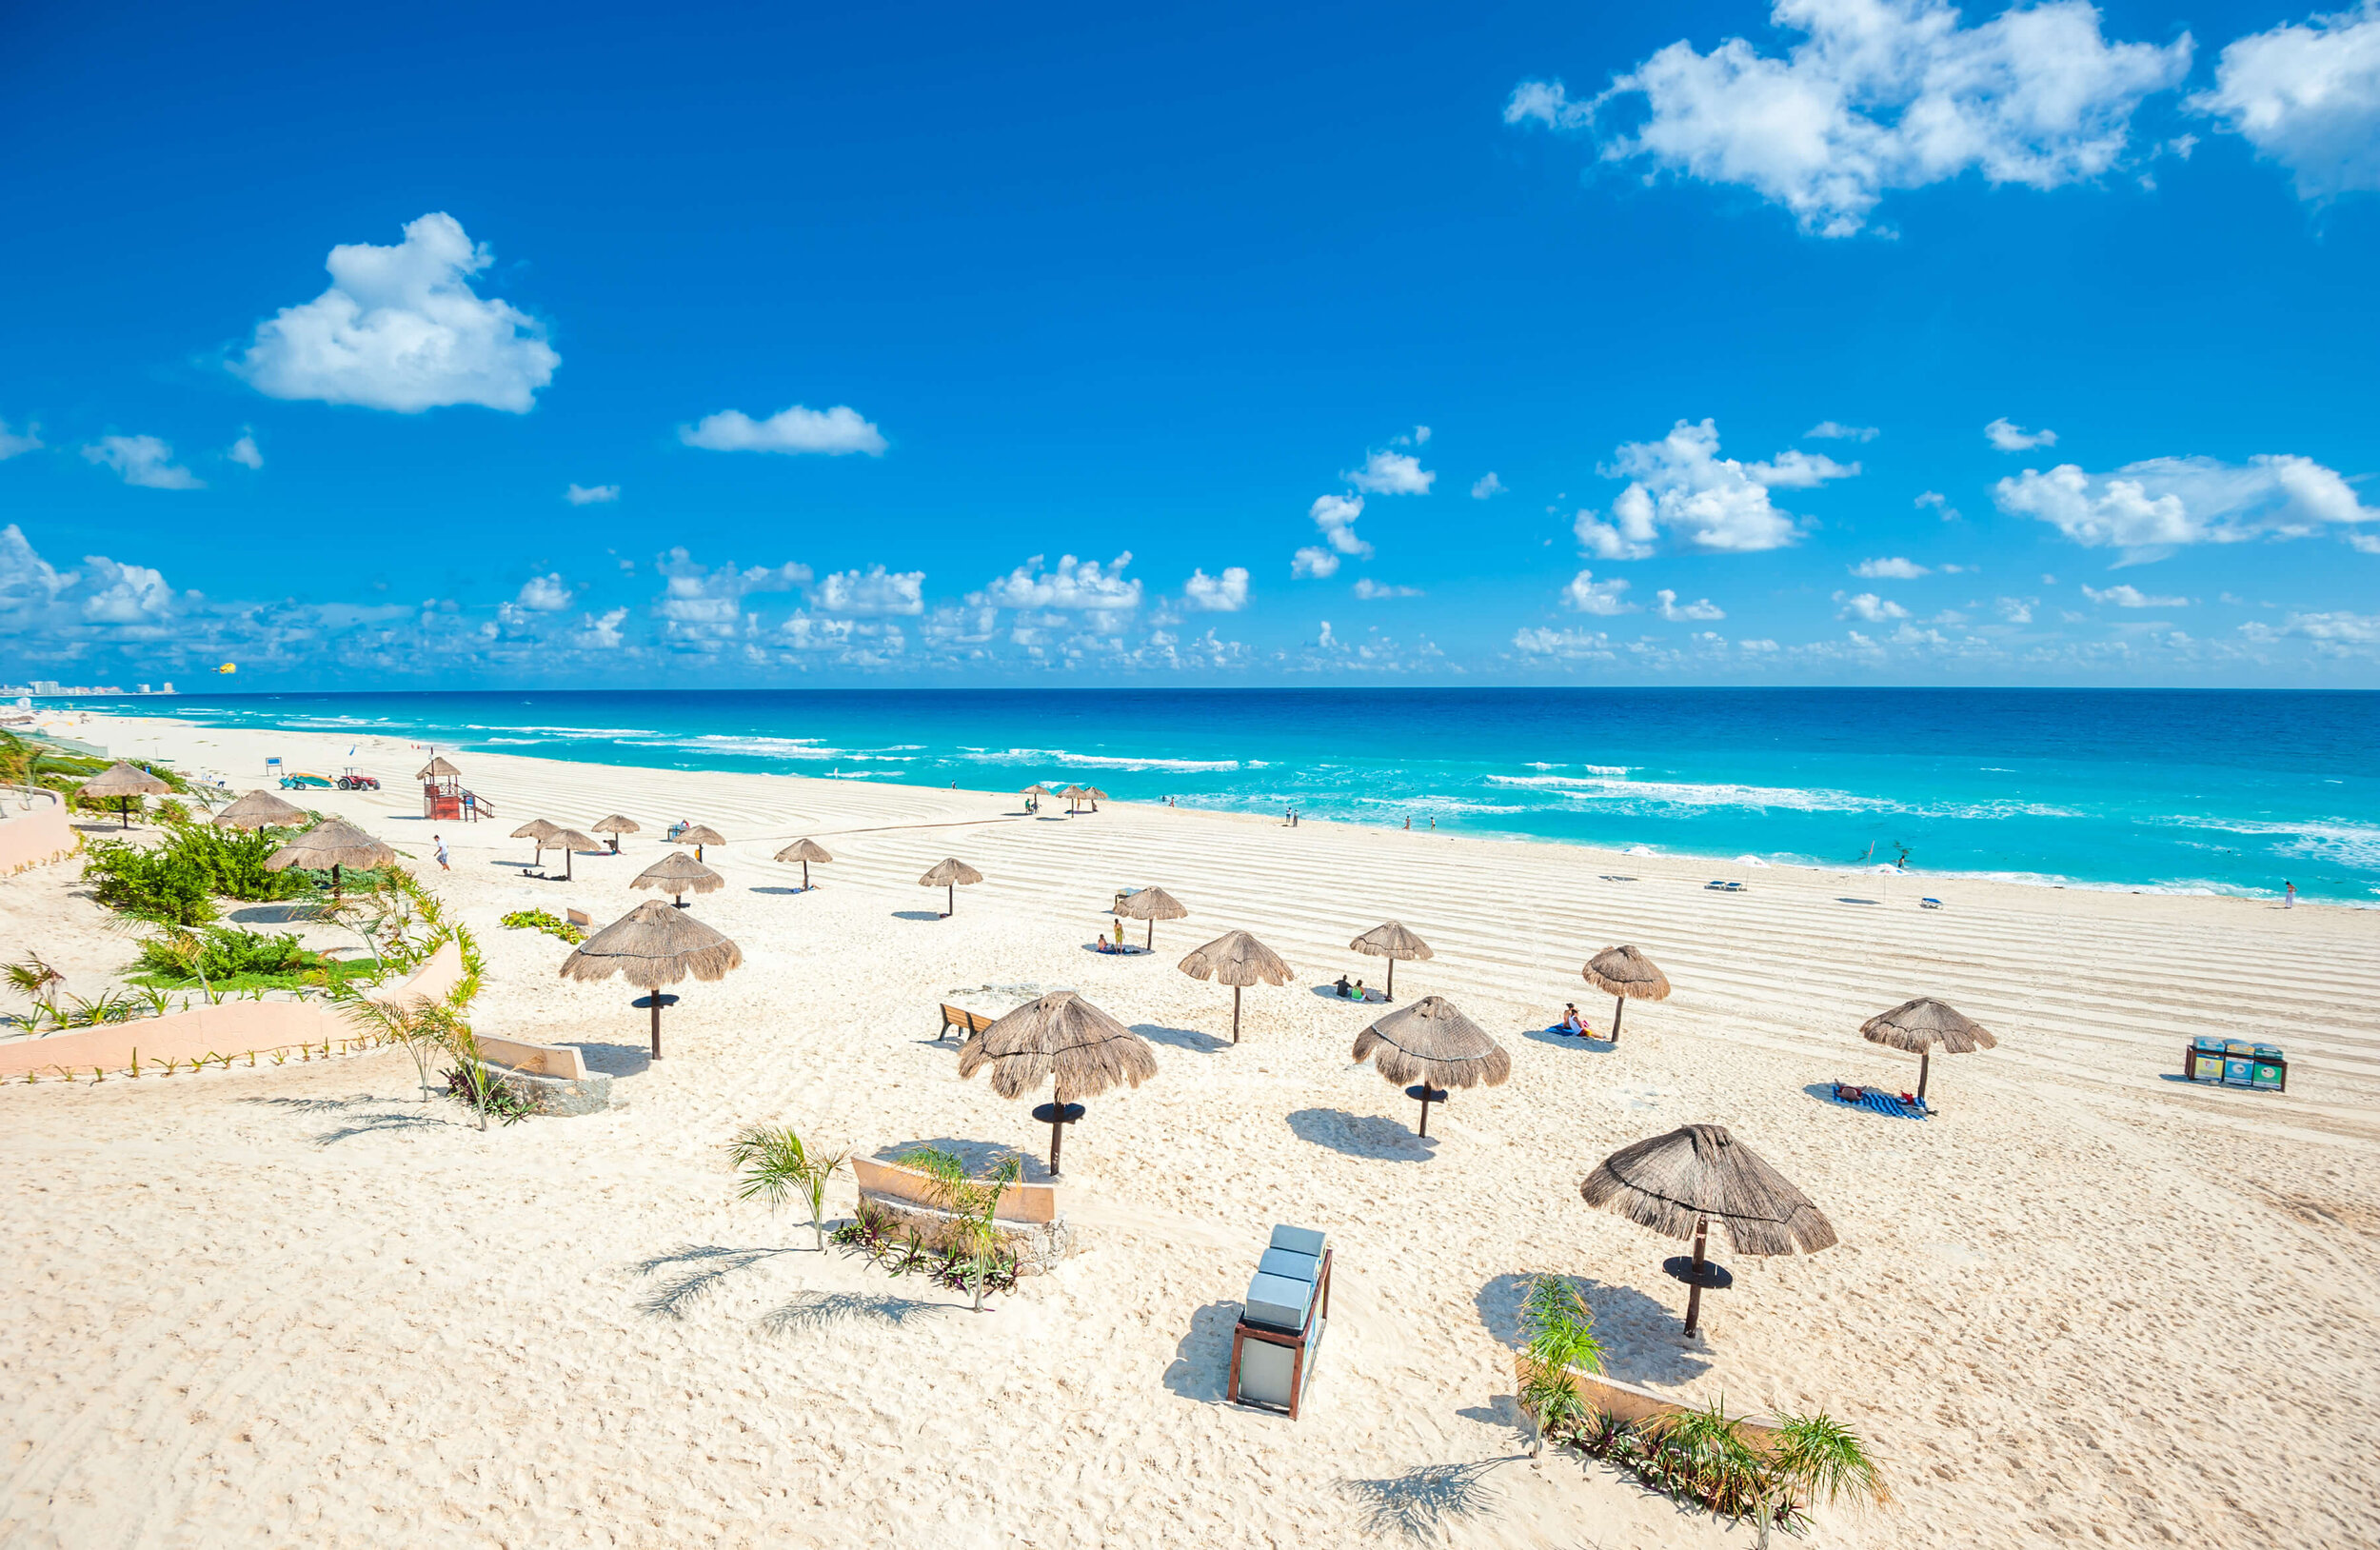 Image for post: How to Win a Trip to Cancun Playing a Free Online Poker Tournament!